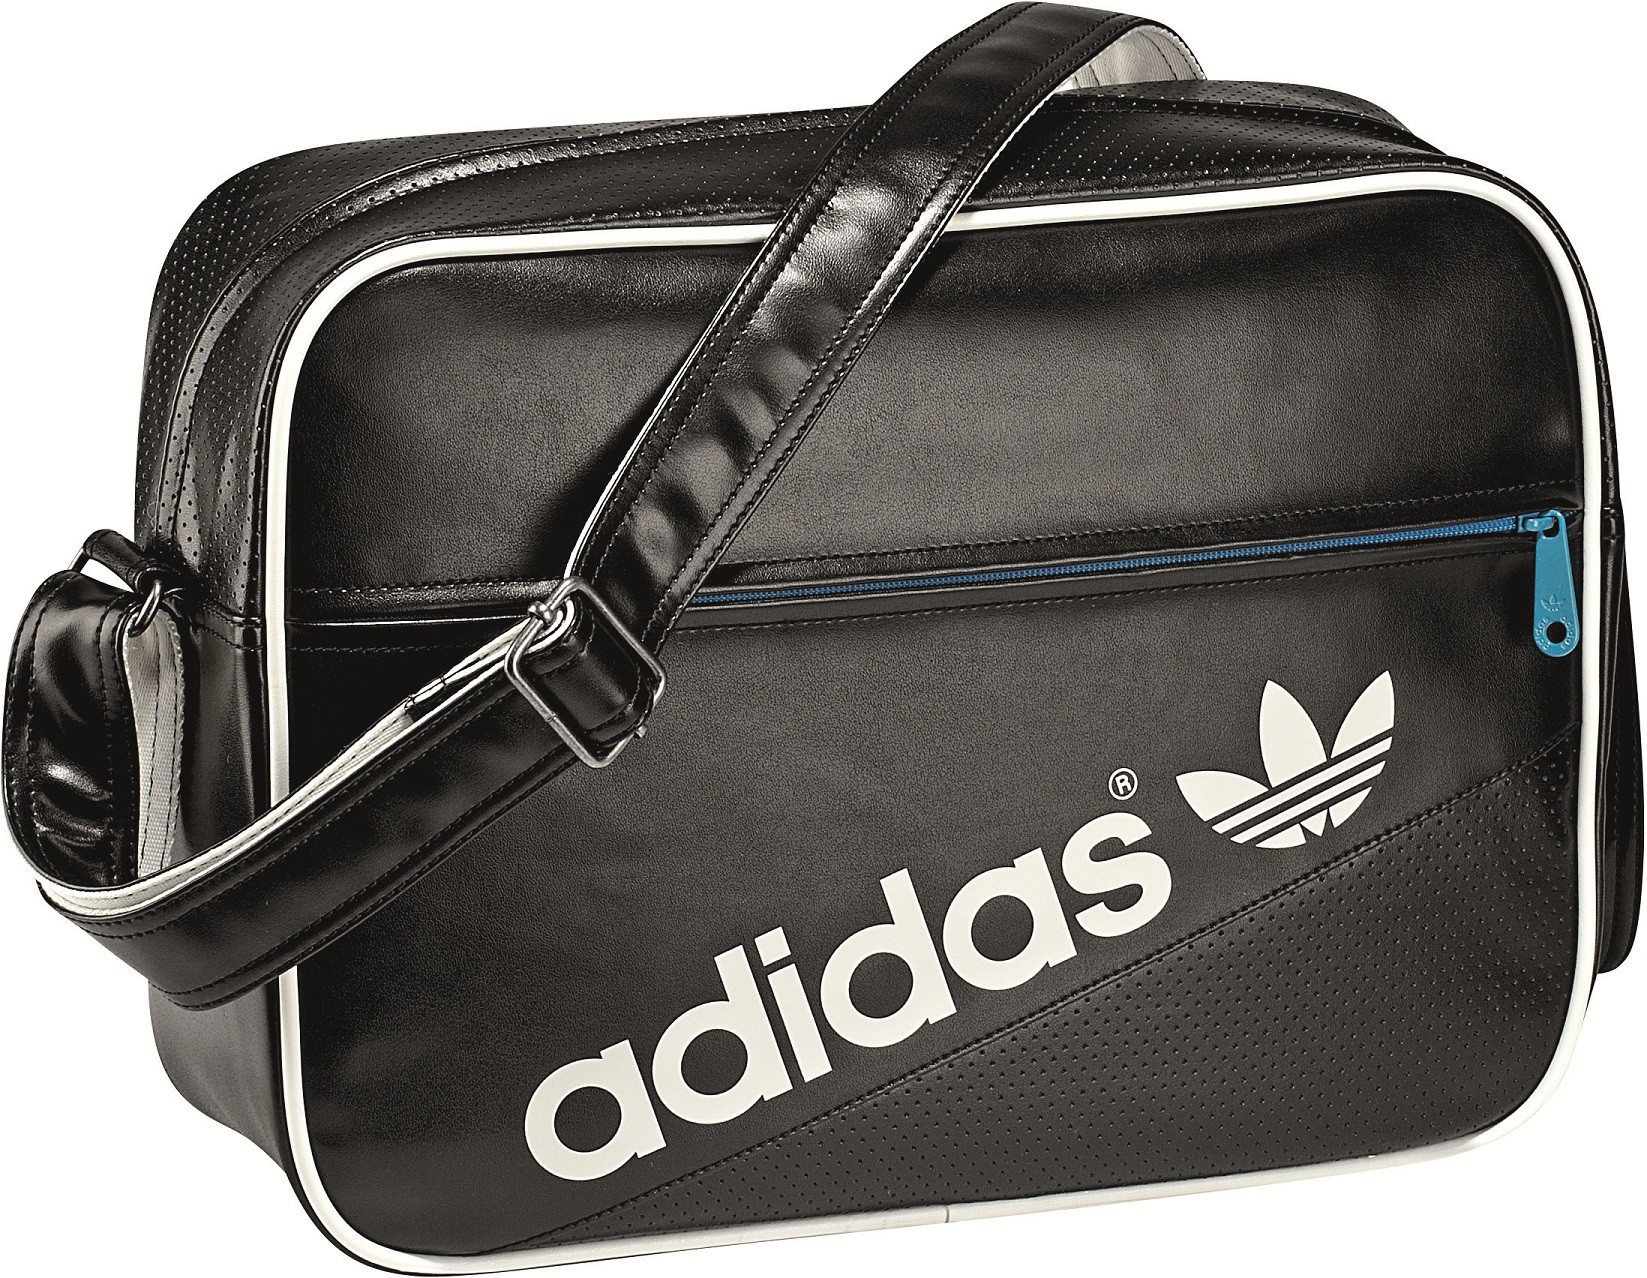 adidas m nner perforierte airline tasche schwarz wei ebay. Black Bedroom Furniture Sets. Home Design Ideas